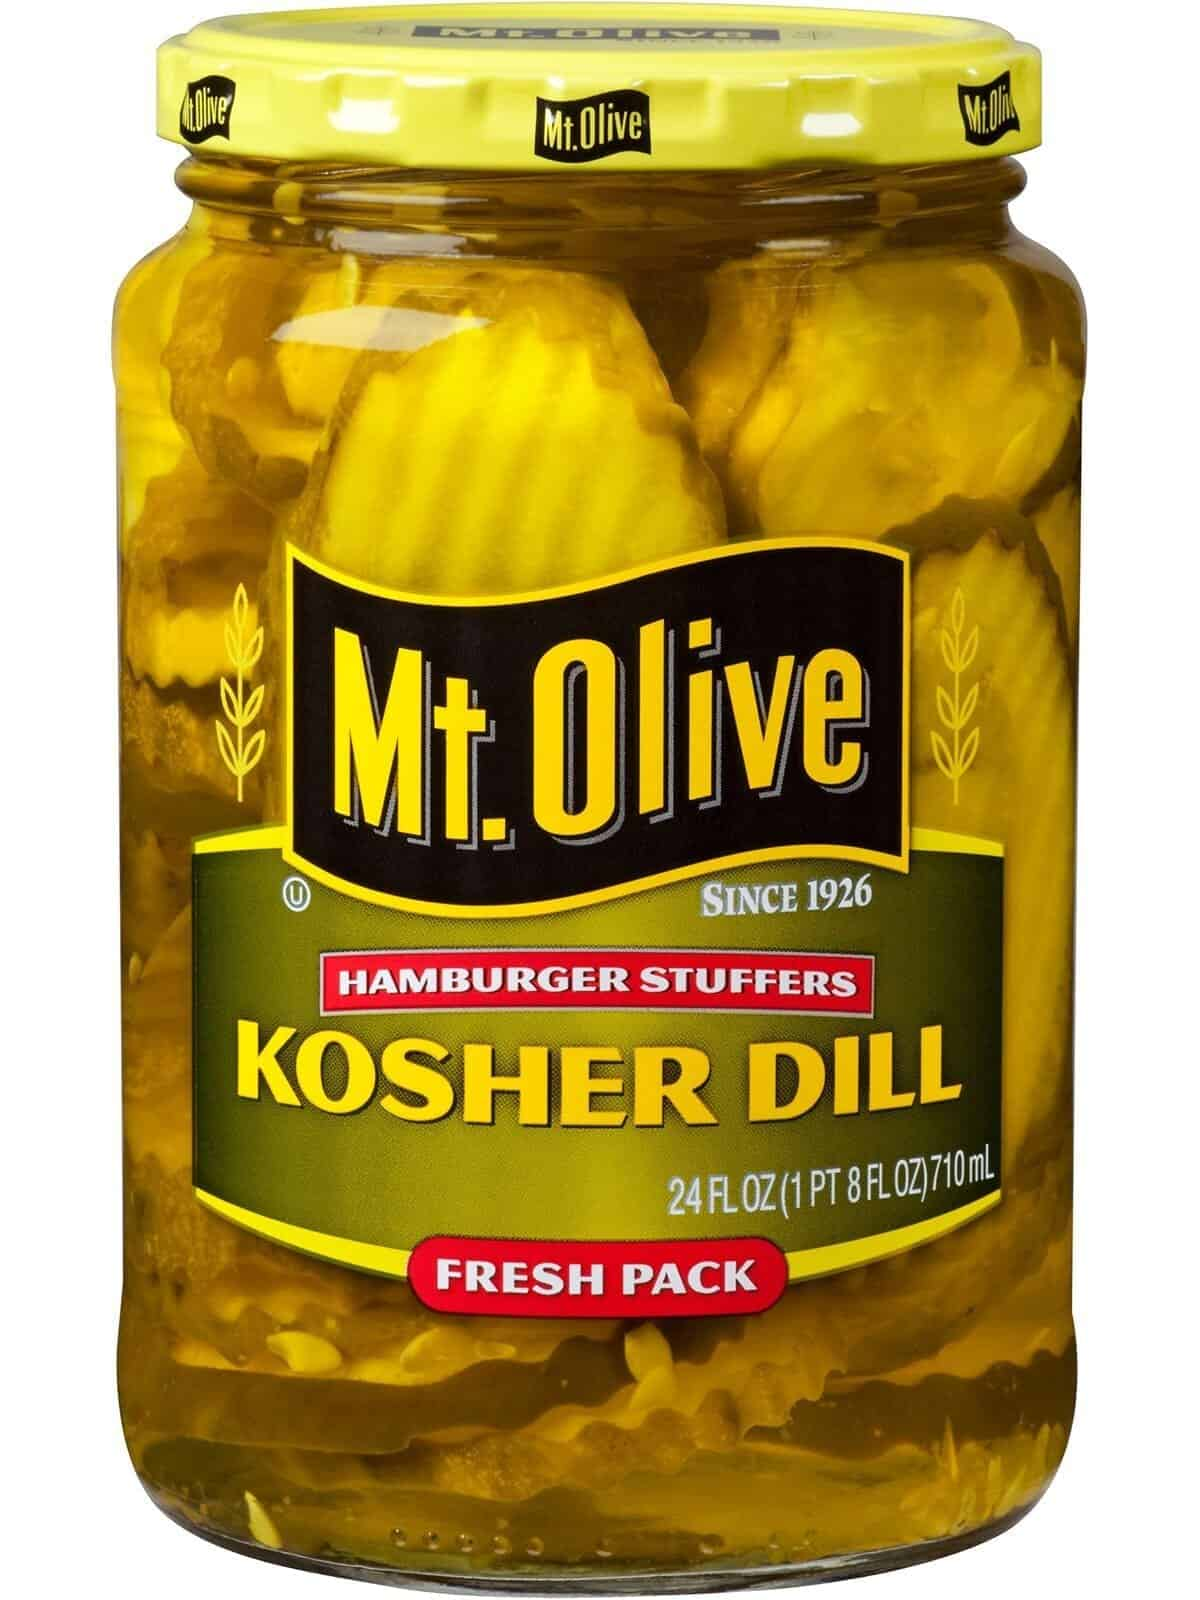 Kosher Dill Hamburger Stuffers